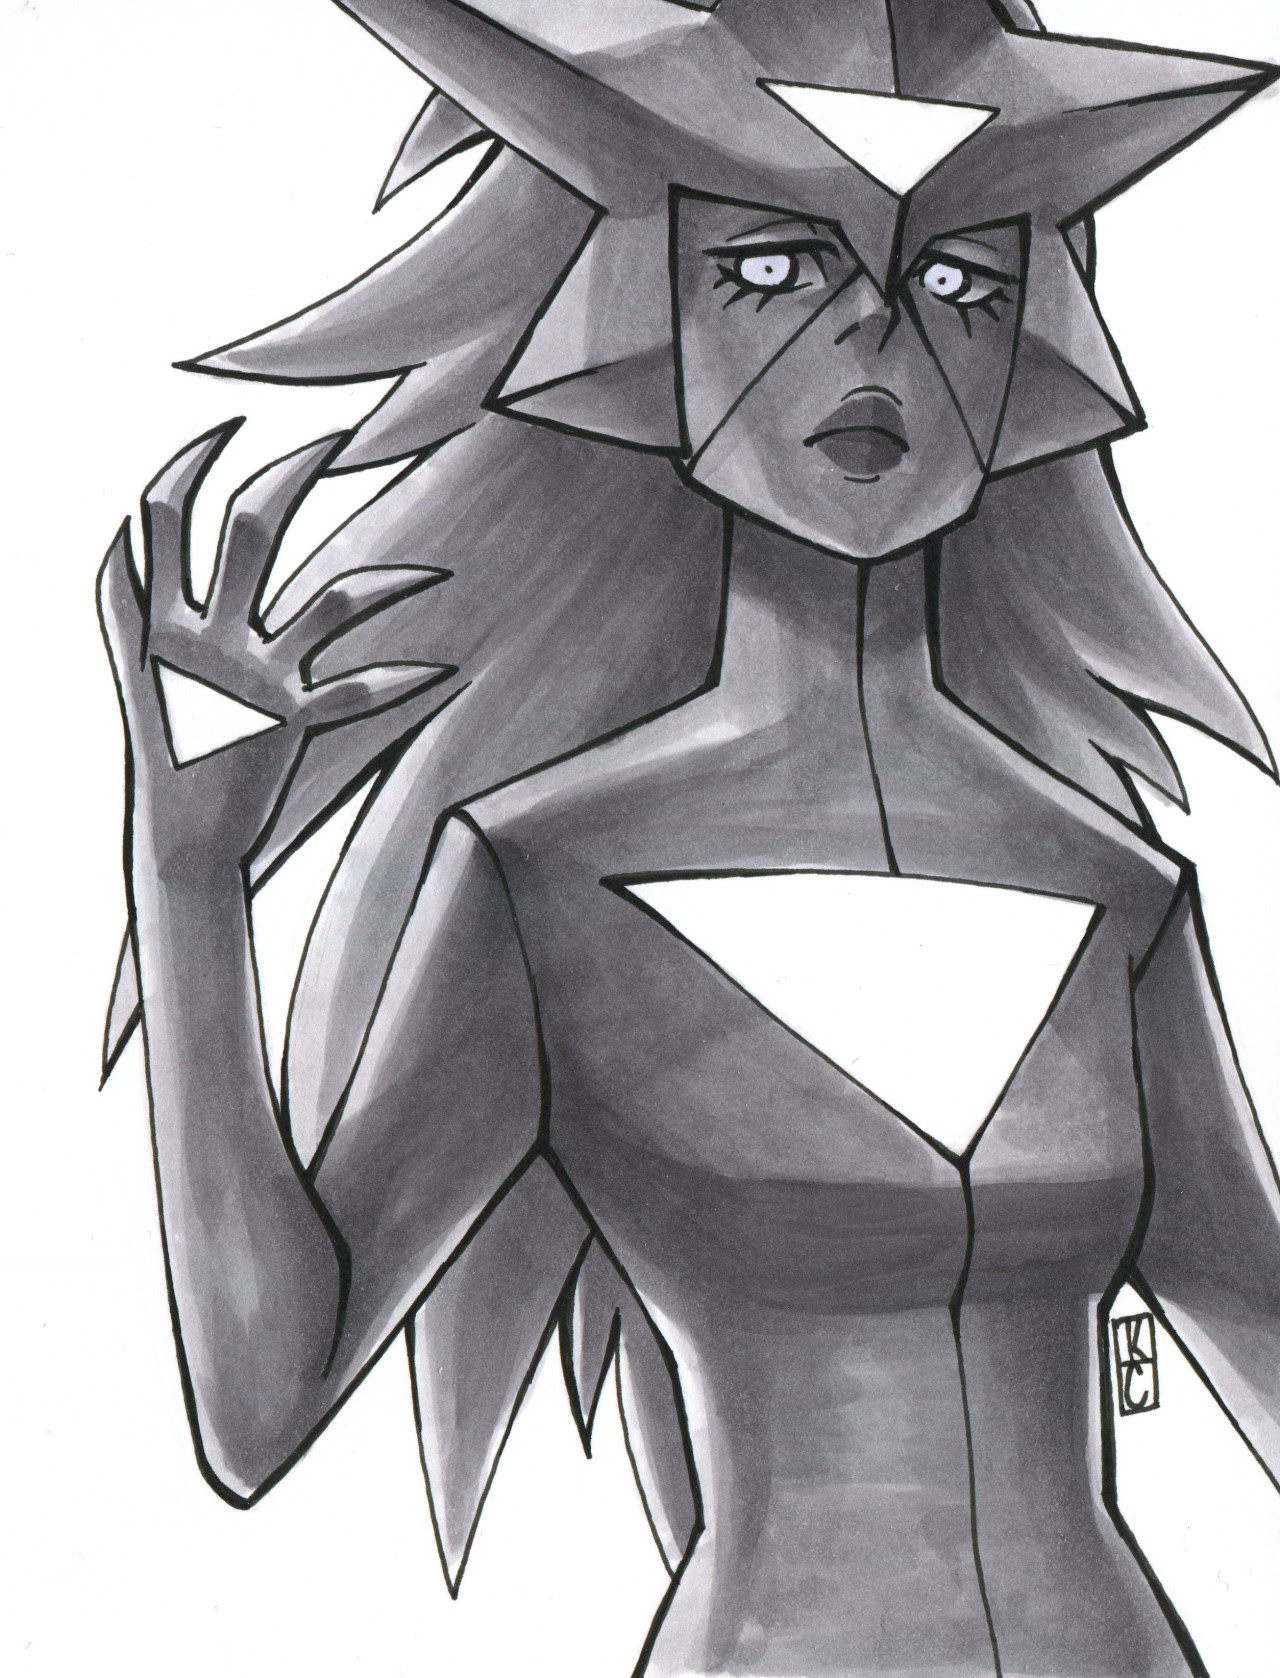 Unknowable Geometry III ——– White Diamond and her hypno-eyes.